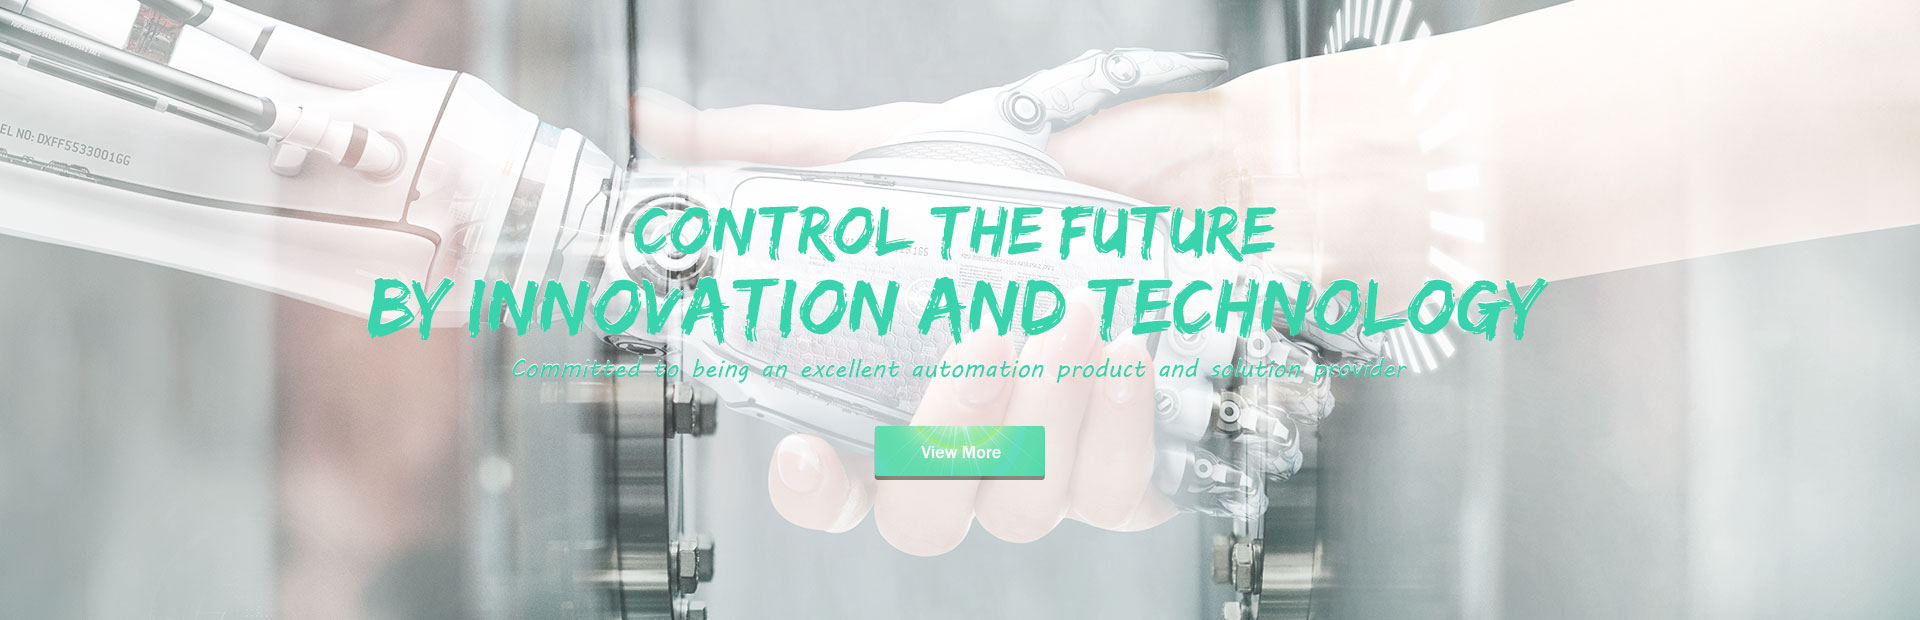 excellent-automation-product1